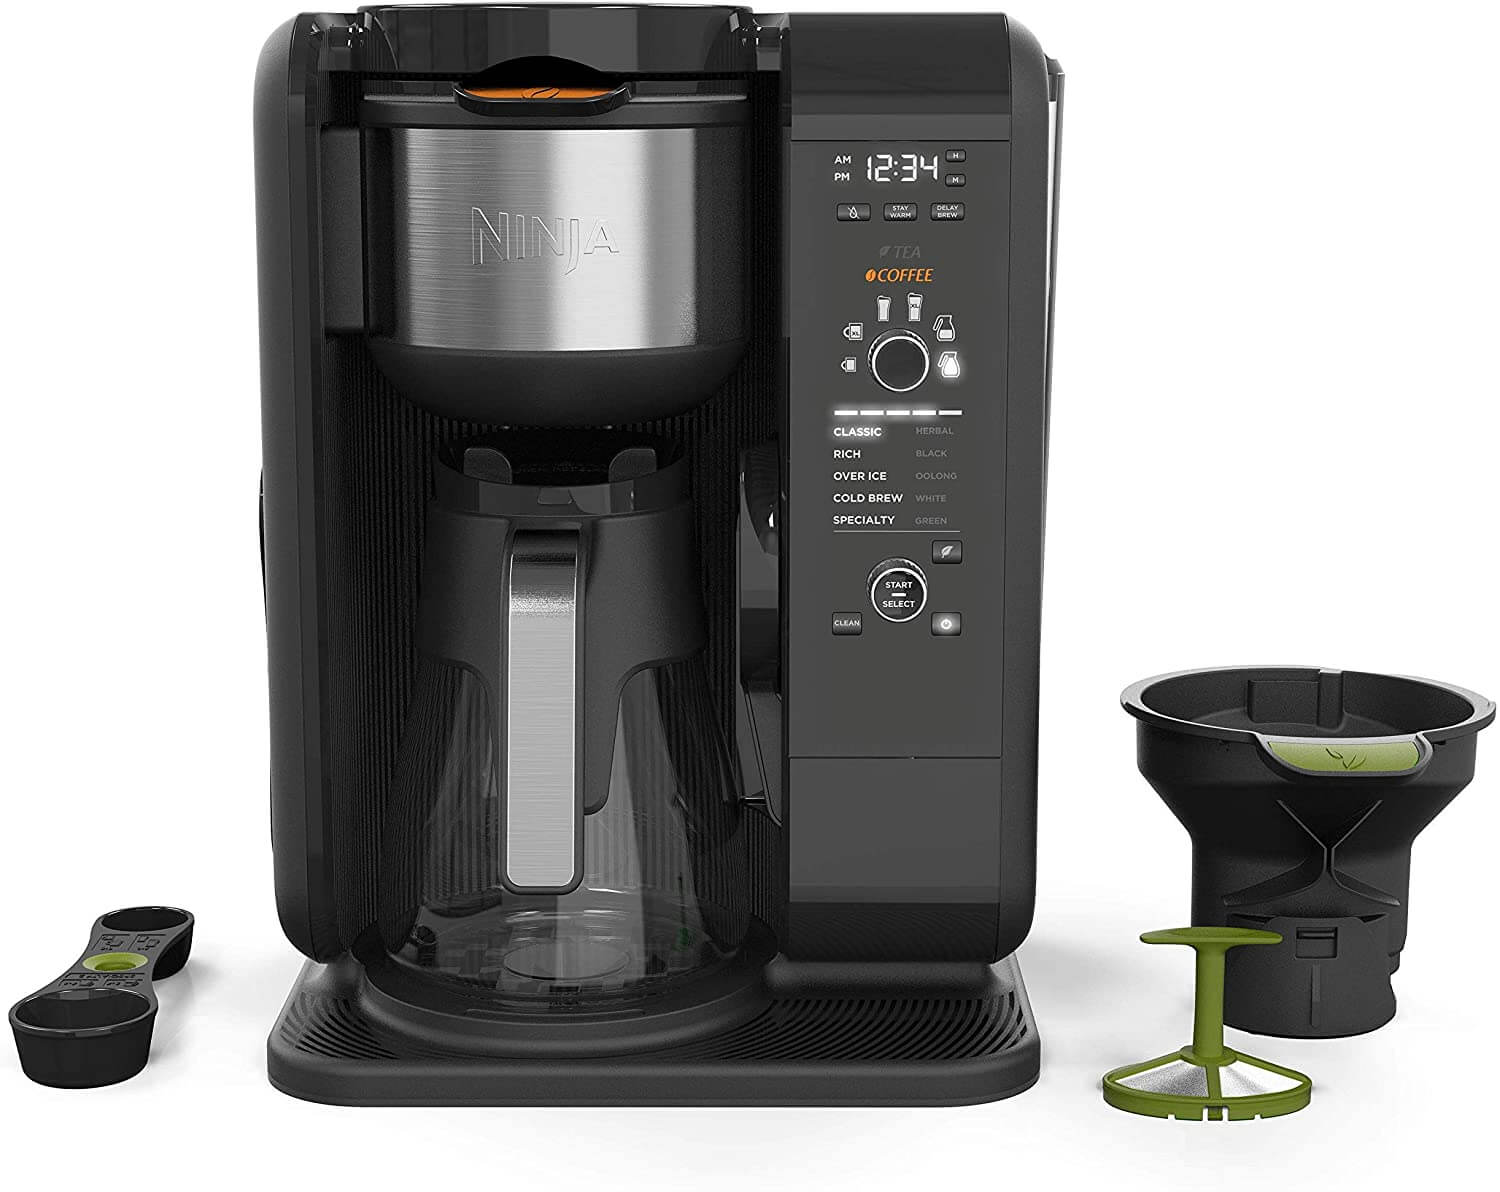 Ninja Hot and Cold CP301 Renewed Brewer System